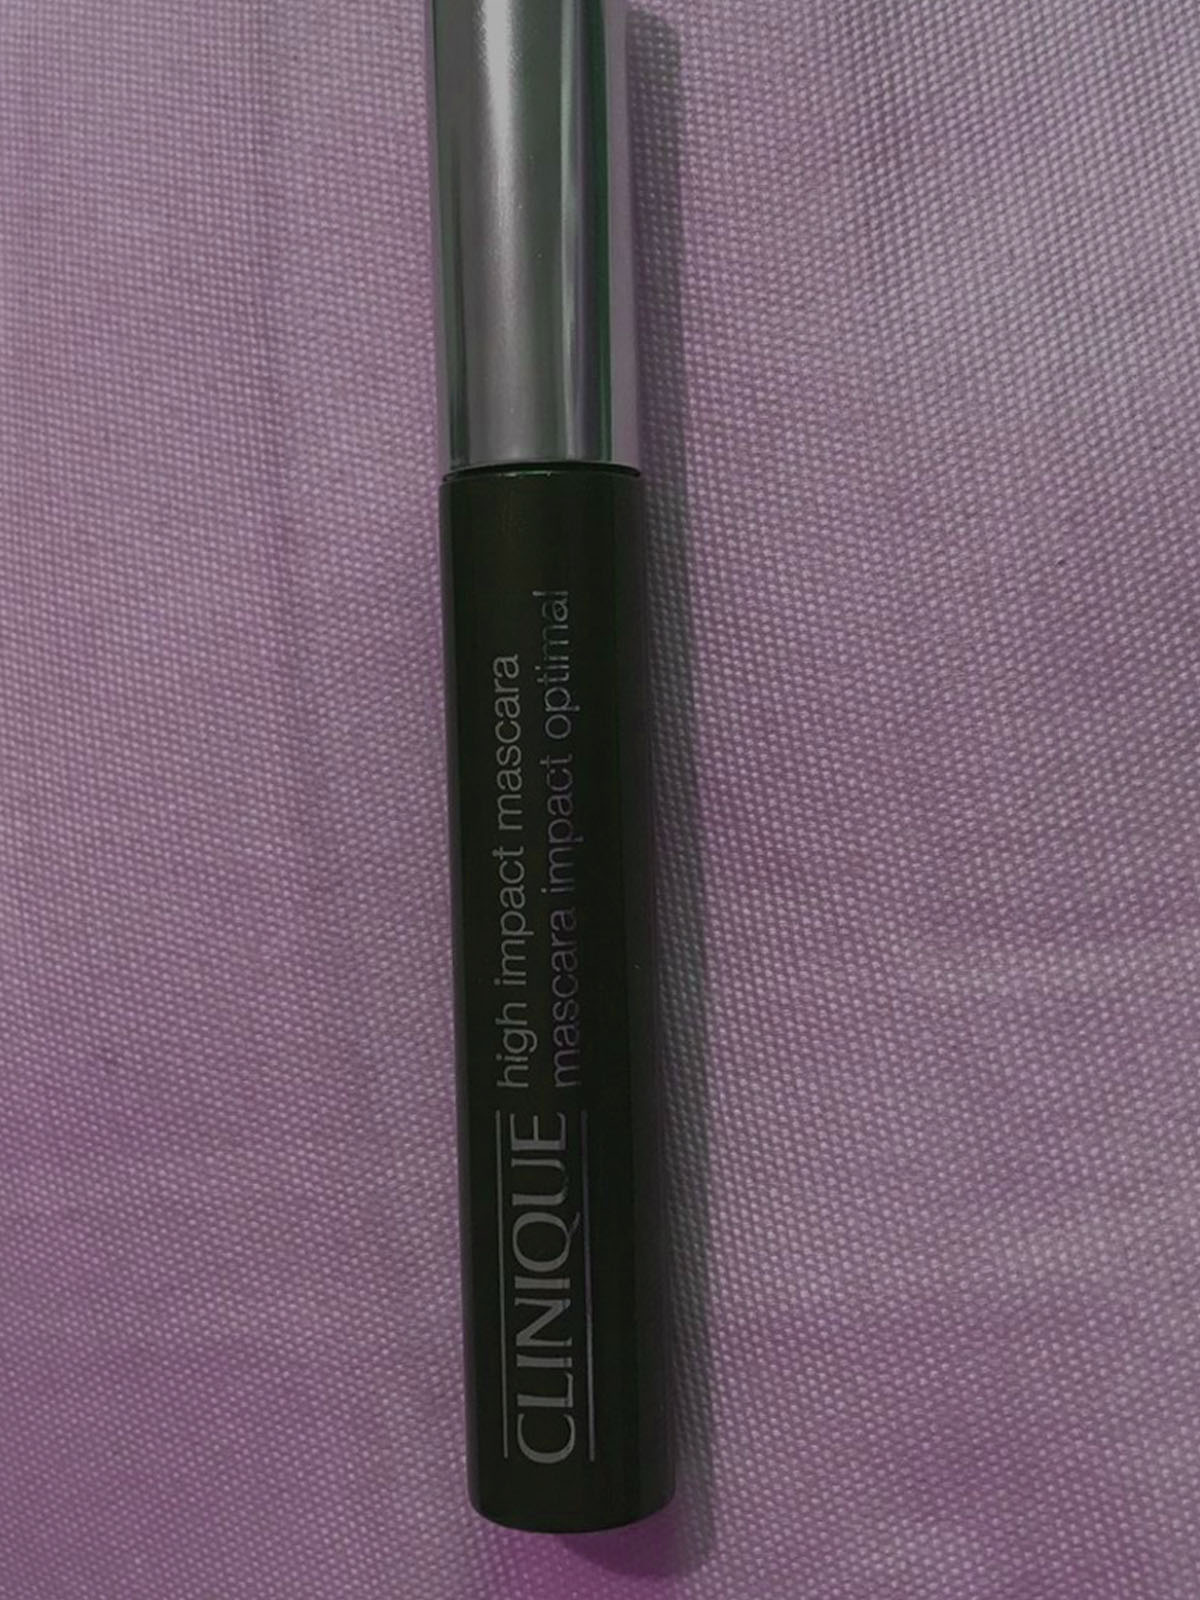 Clinique High Impact Mascara-Love the product-By monica1204-2